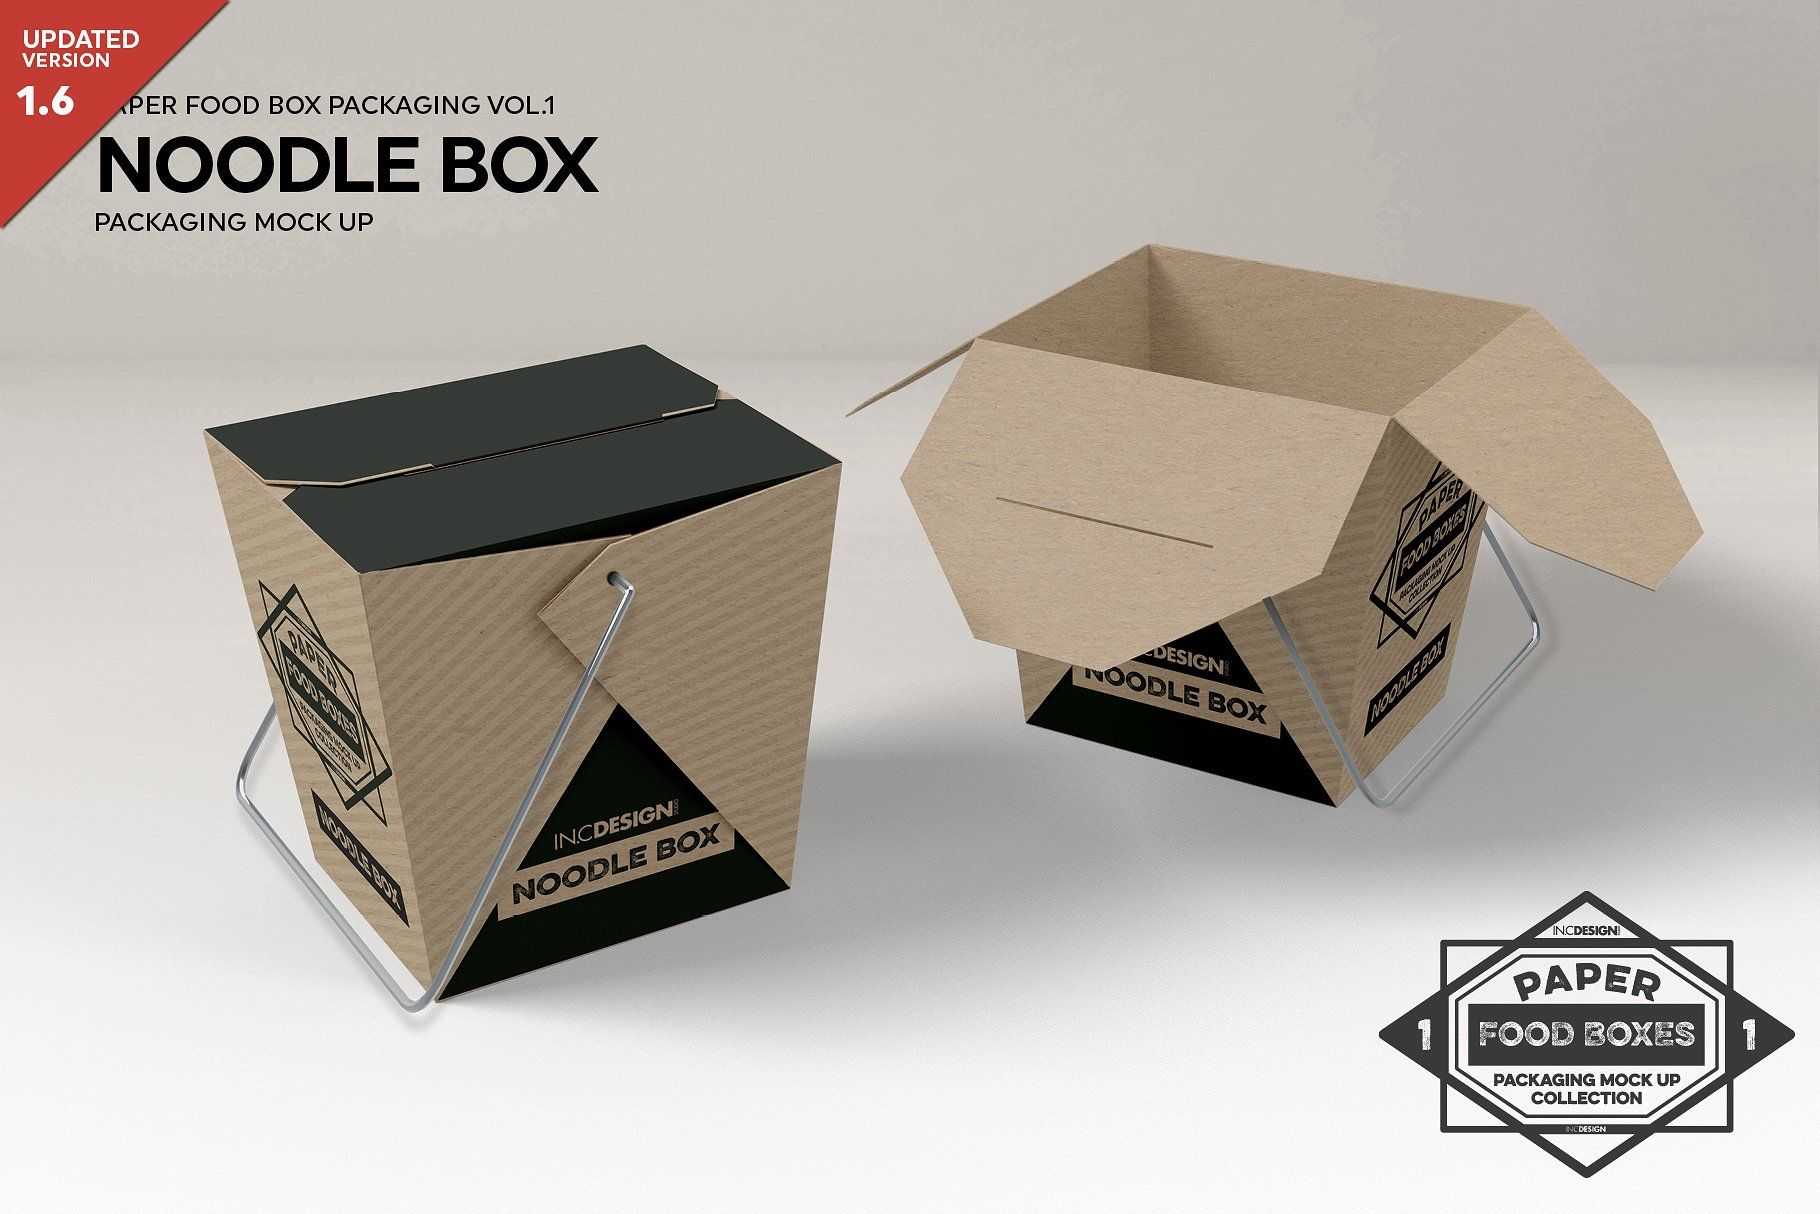 8ec38208eb41 #10: Chinese Noodle Take out Boxes Packaging Mock Up (Updated v1.6) Perfect  for presentations and showcasing your design work.